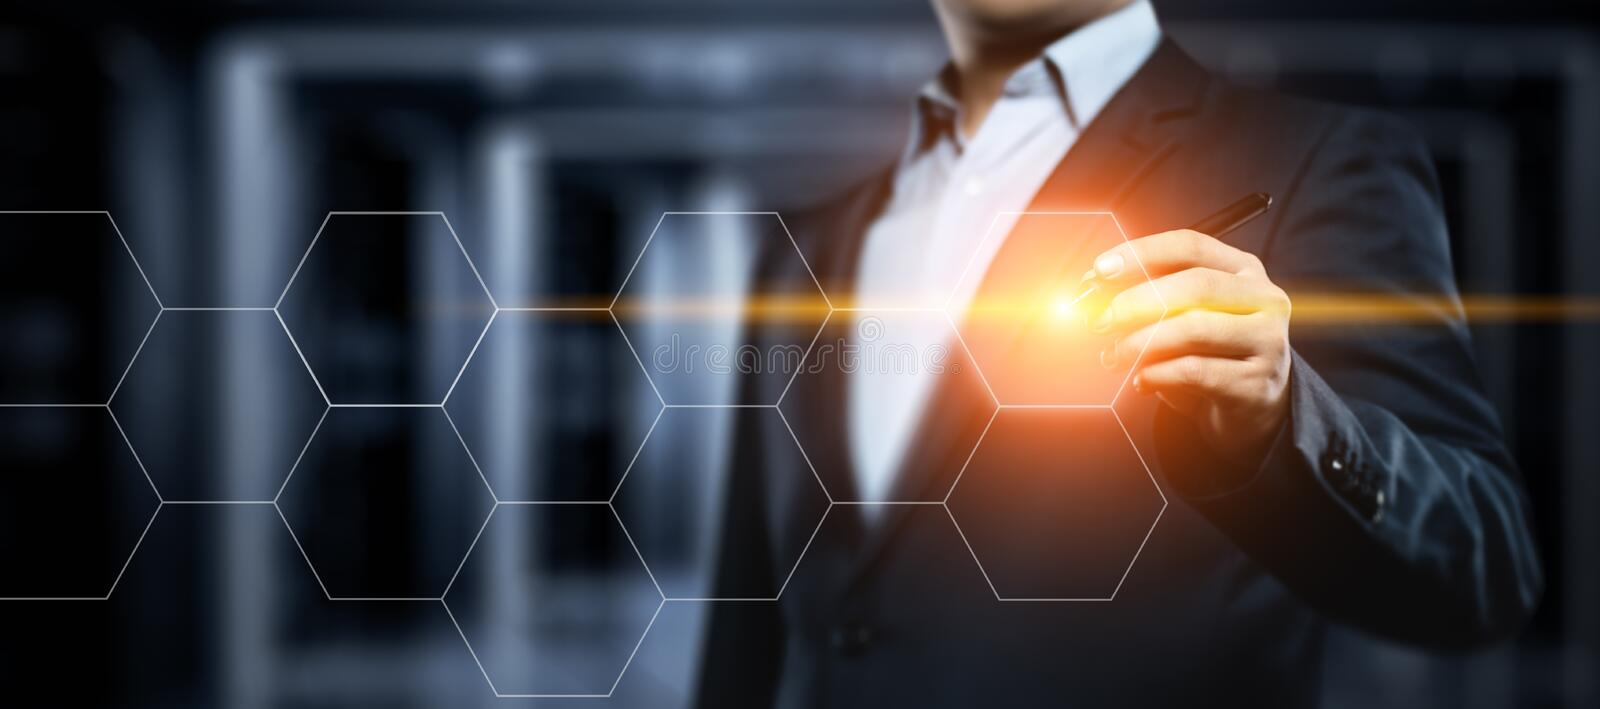 Businessman pressing button. Innovation technology internet business concept. Space for text stock photo